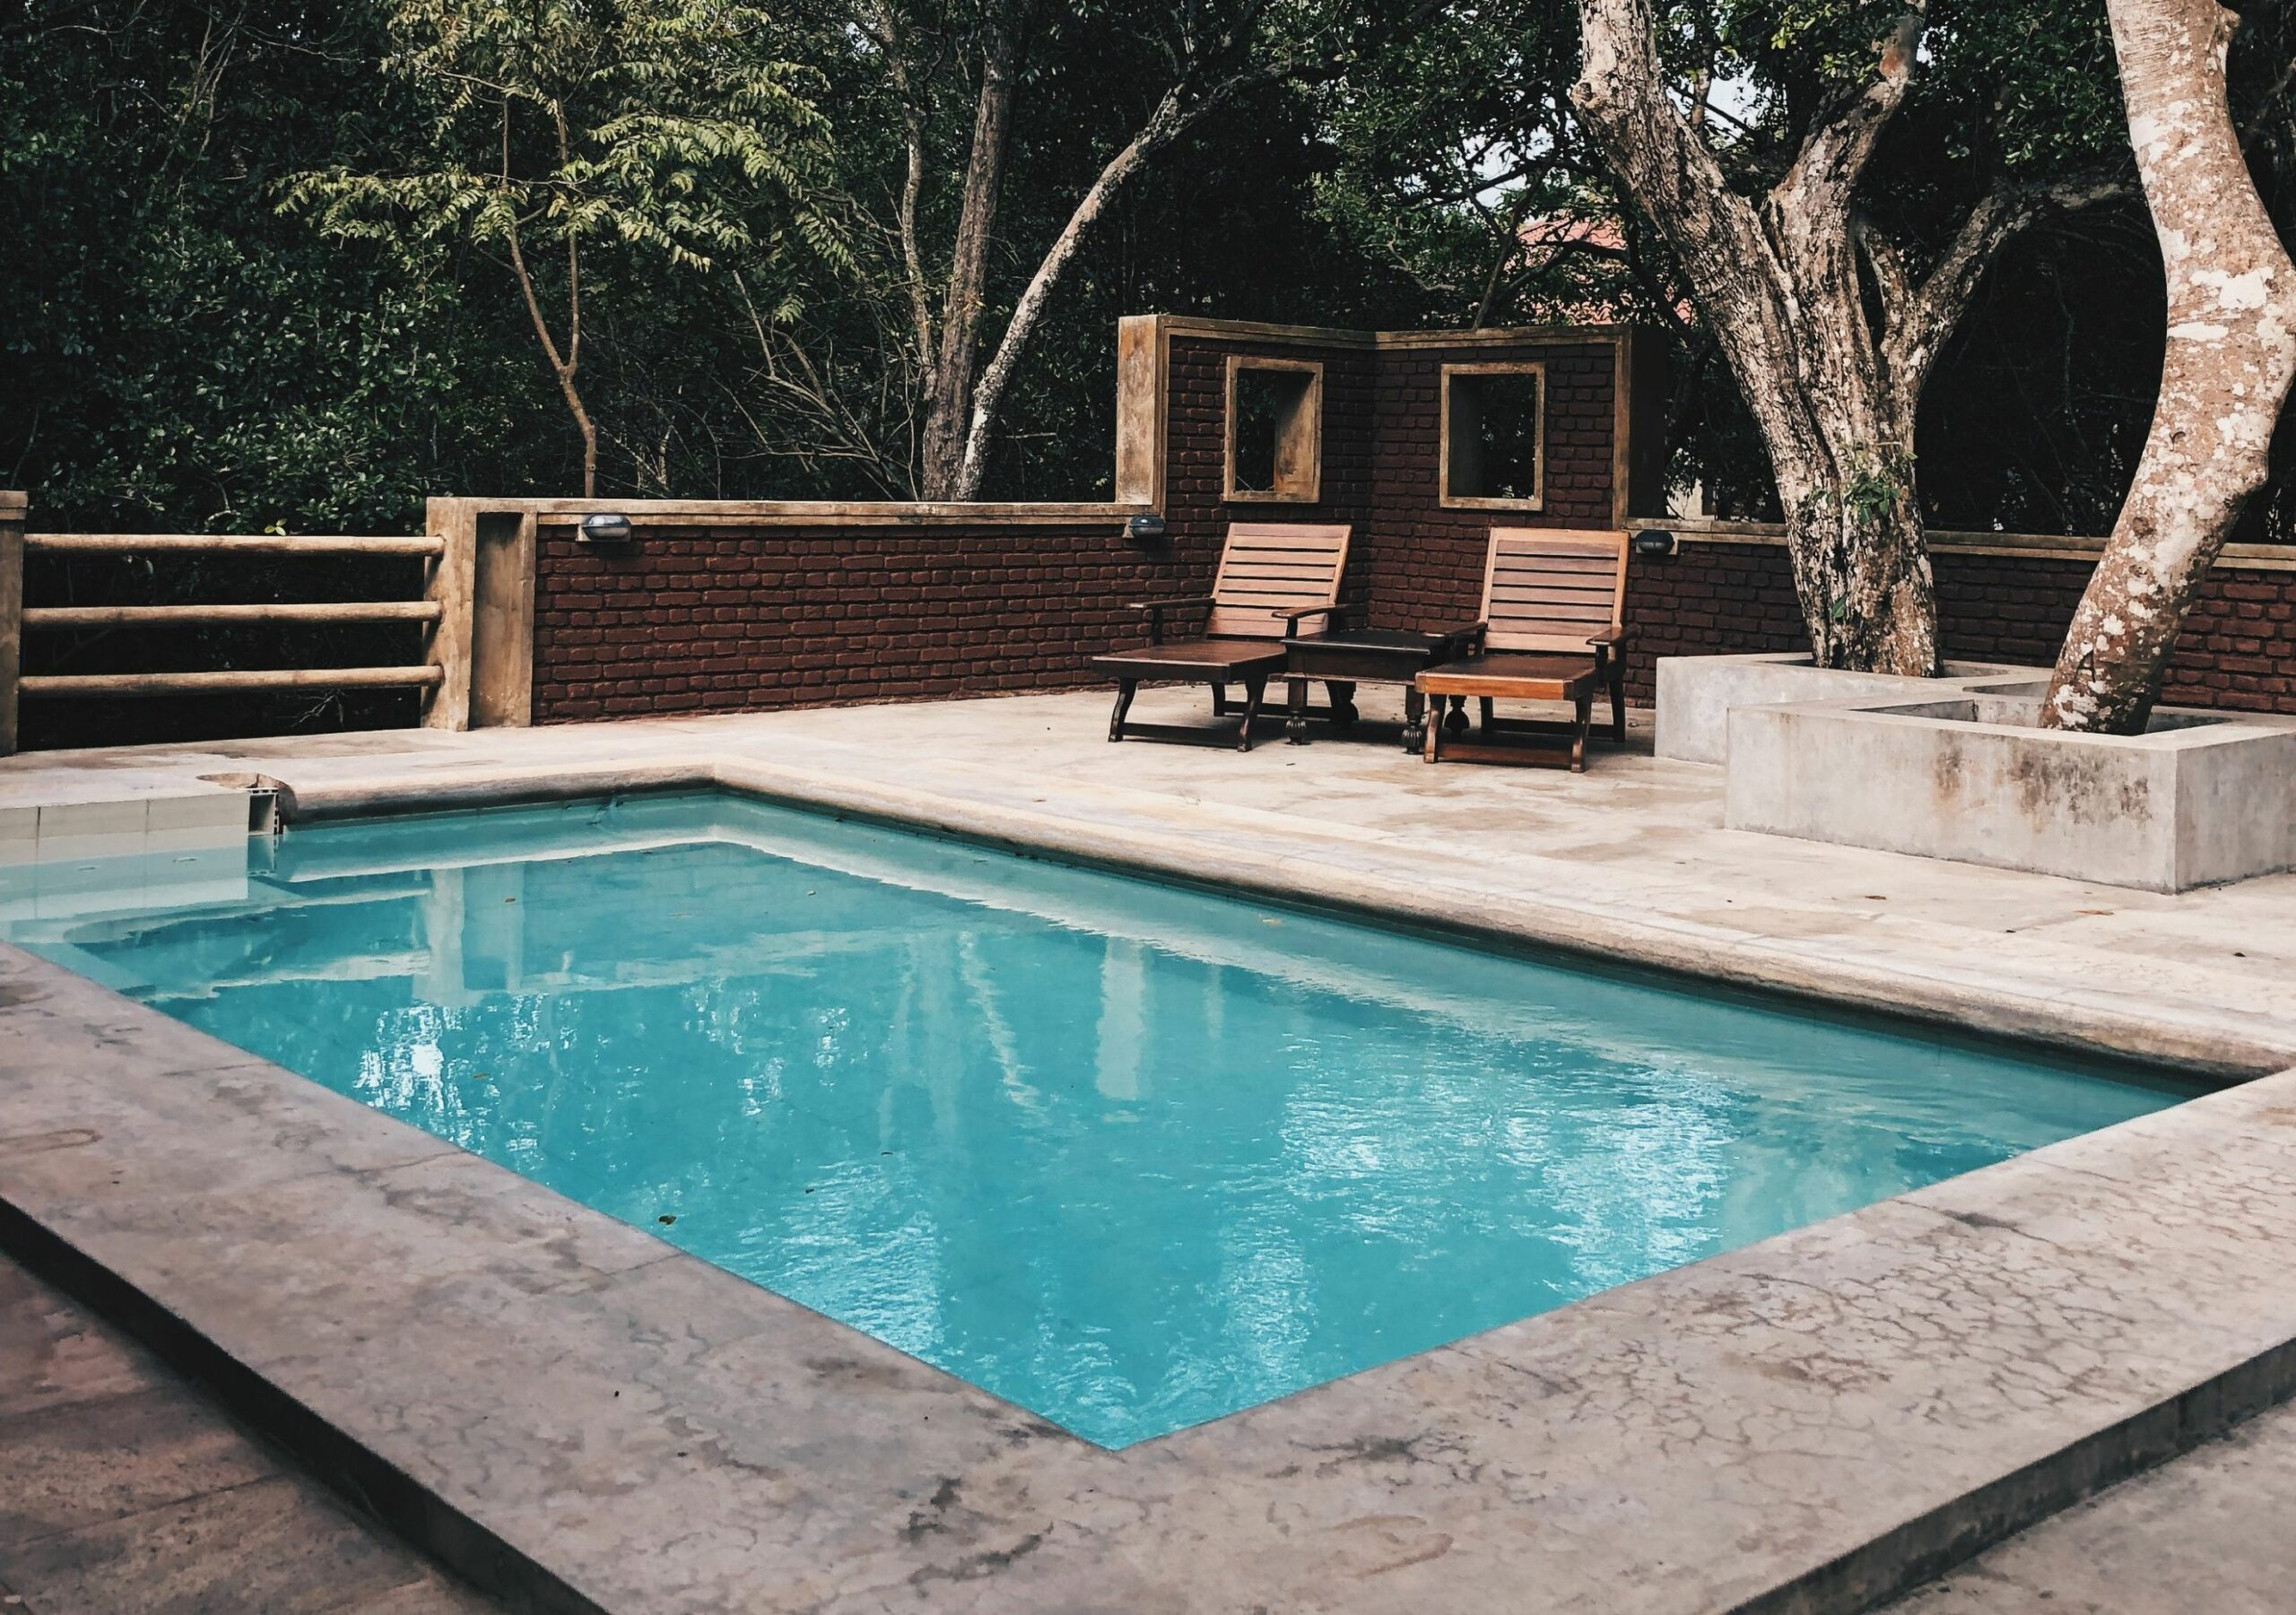 What Is a Cocktail Pool? Designs, Dimensions, Cost, and More - pool ideas together